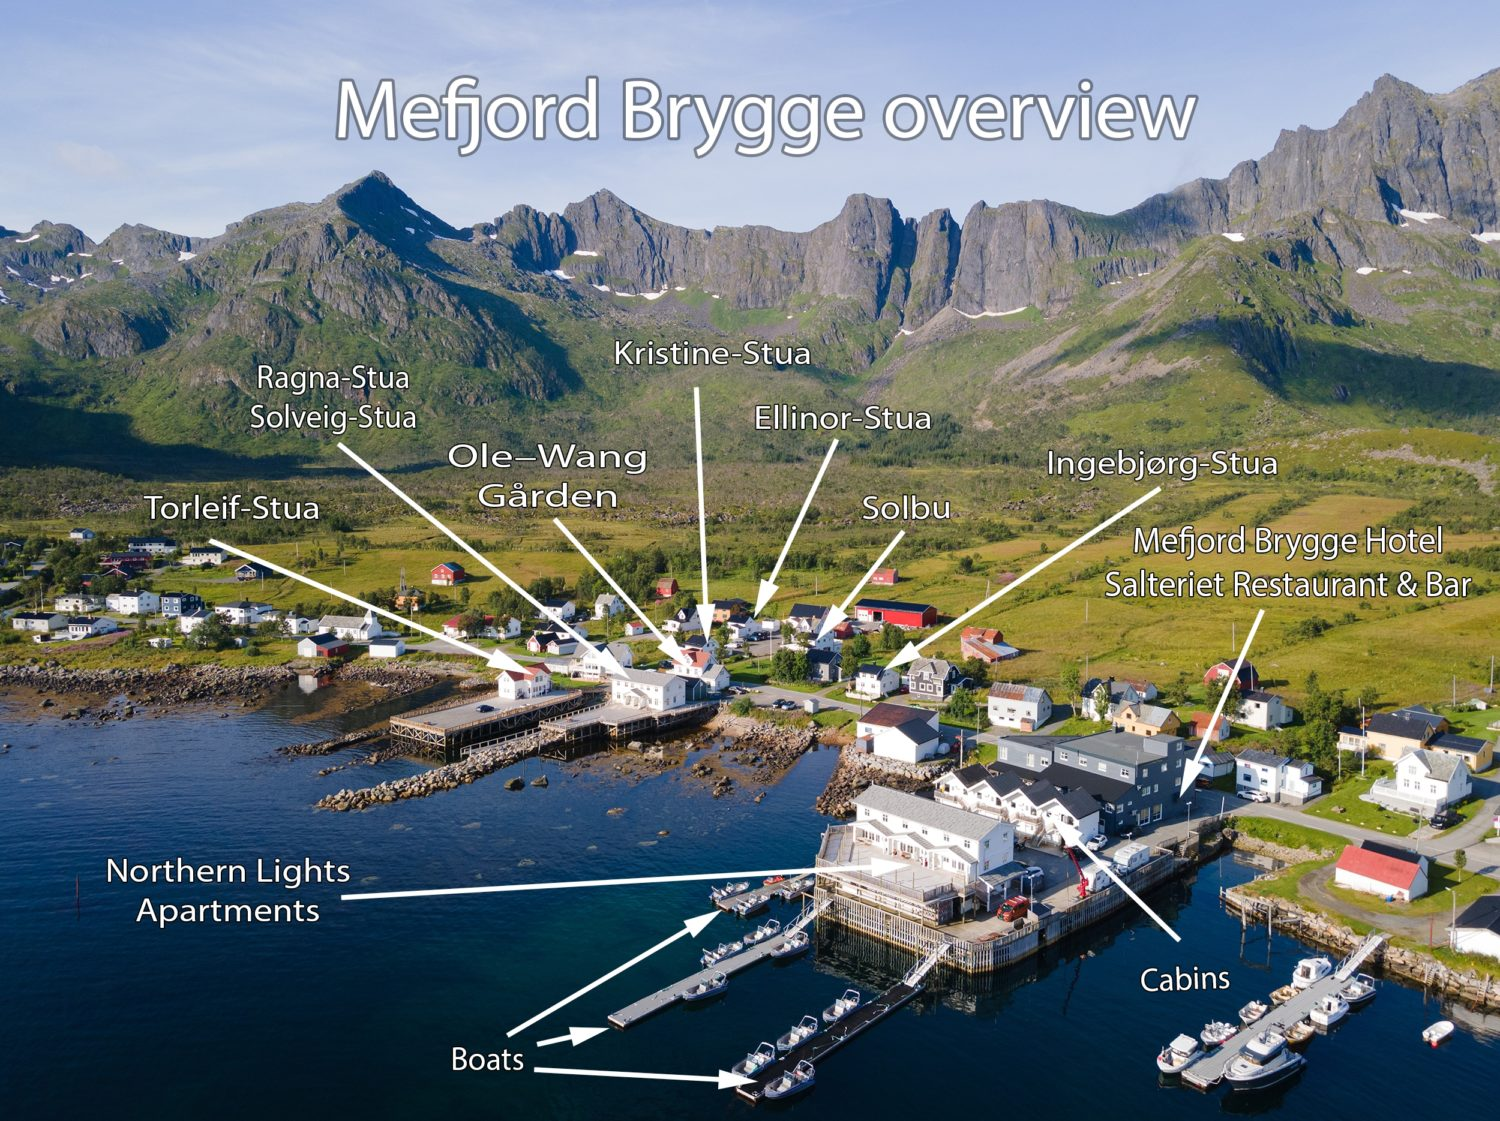 Locations of Mefjord Brygge accommodation